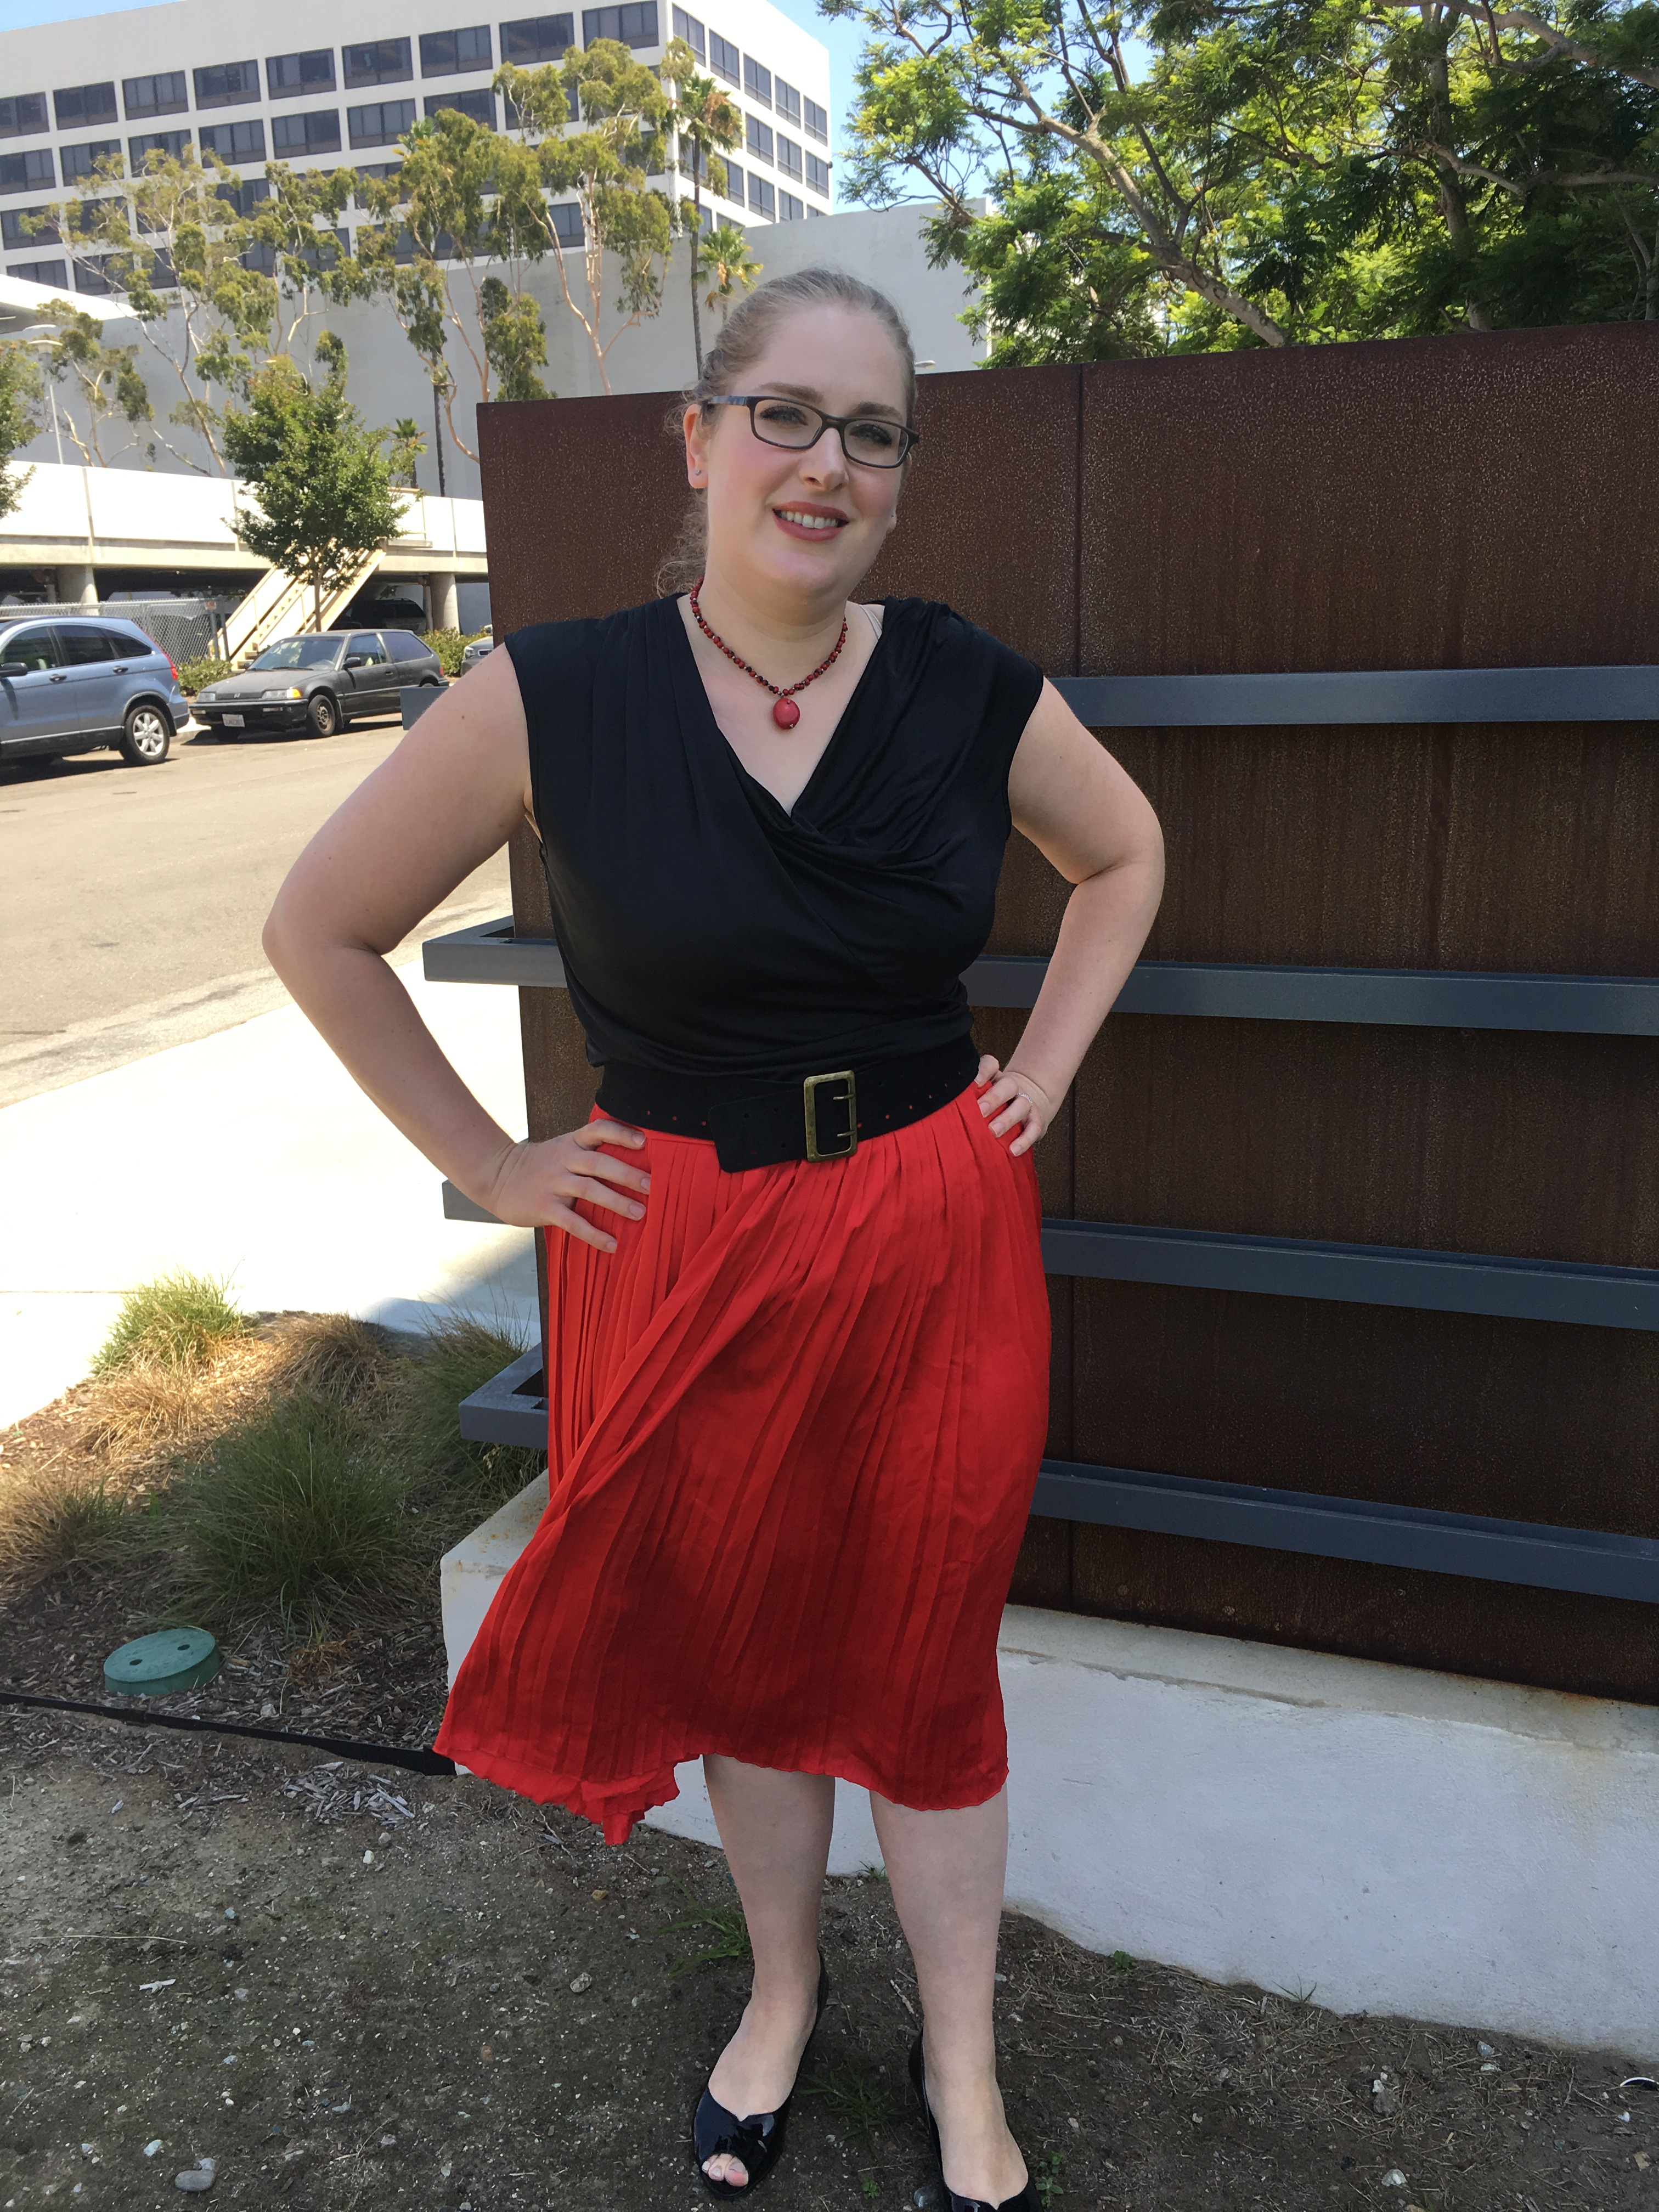 I'm feeling the fiery flamenco influence with this outfit today. Flamenco  dancers traditionally wear a red or red and black dress and this red  pleated midi ...